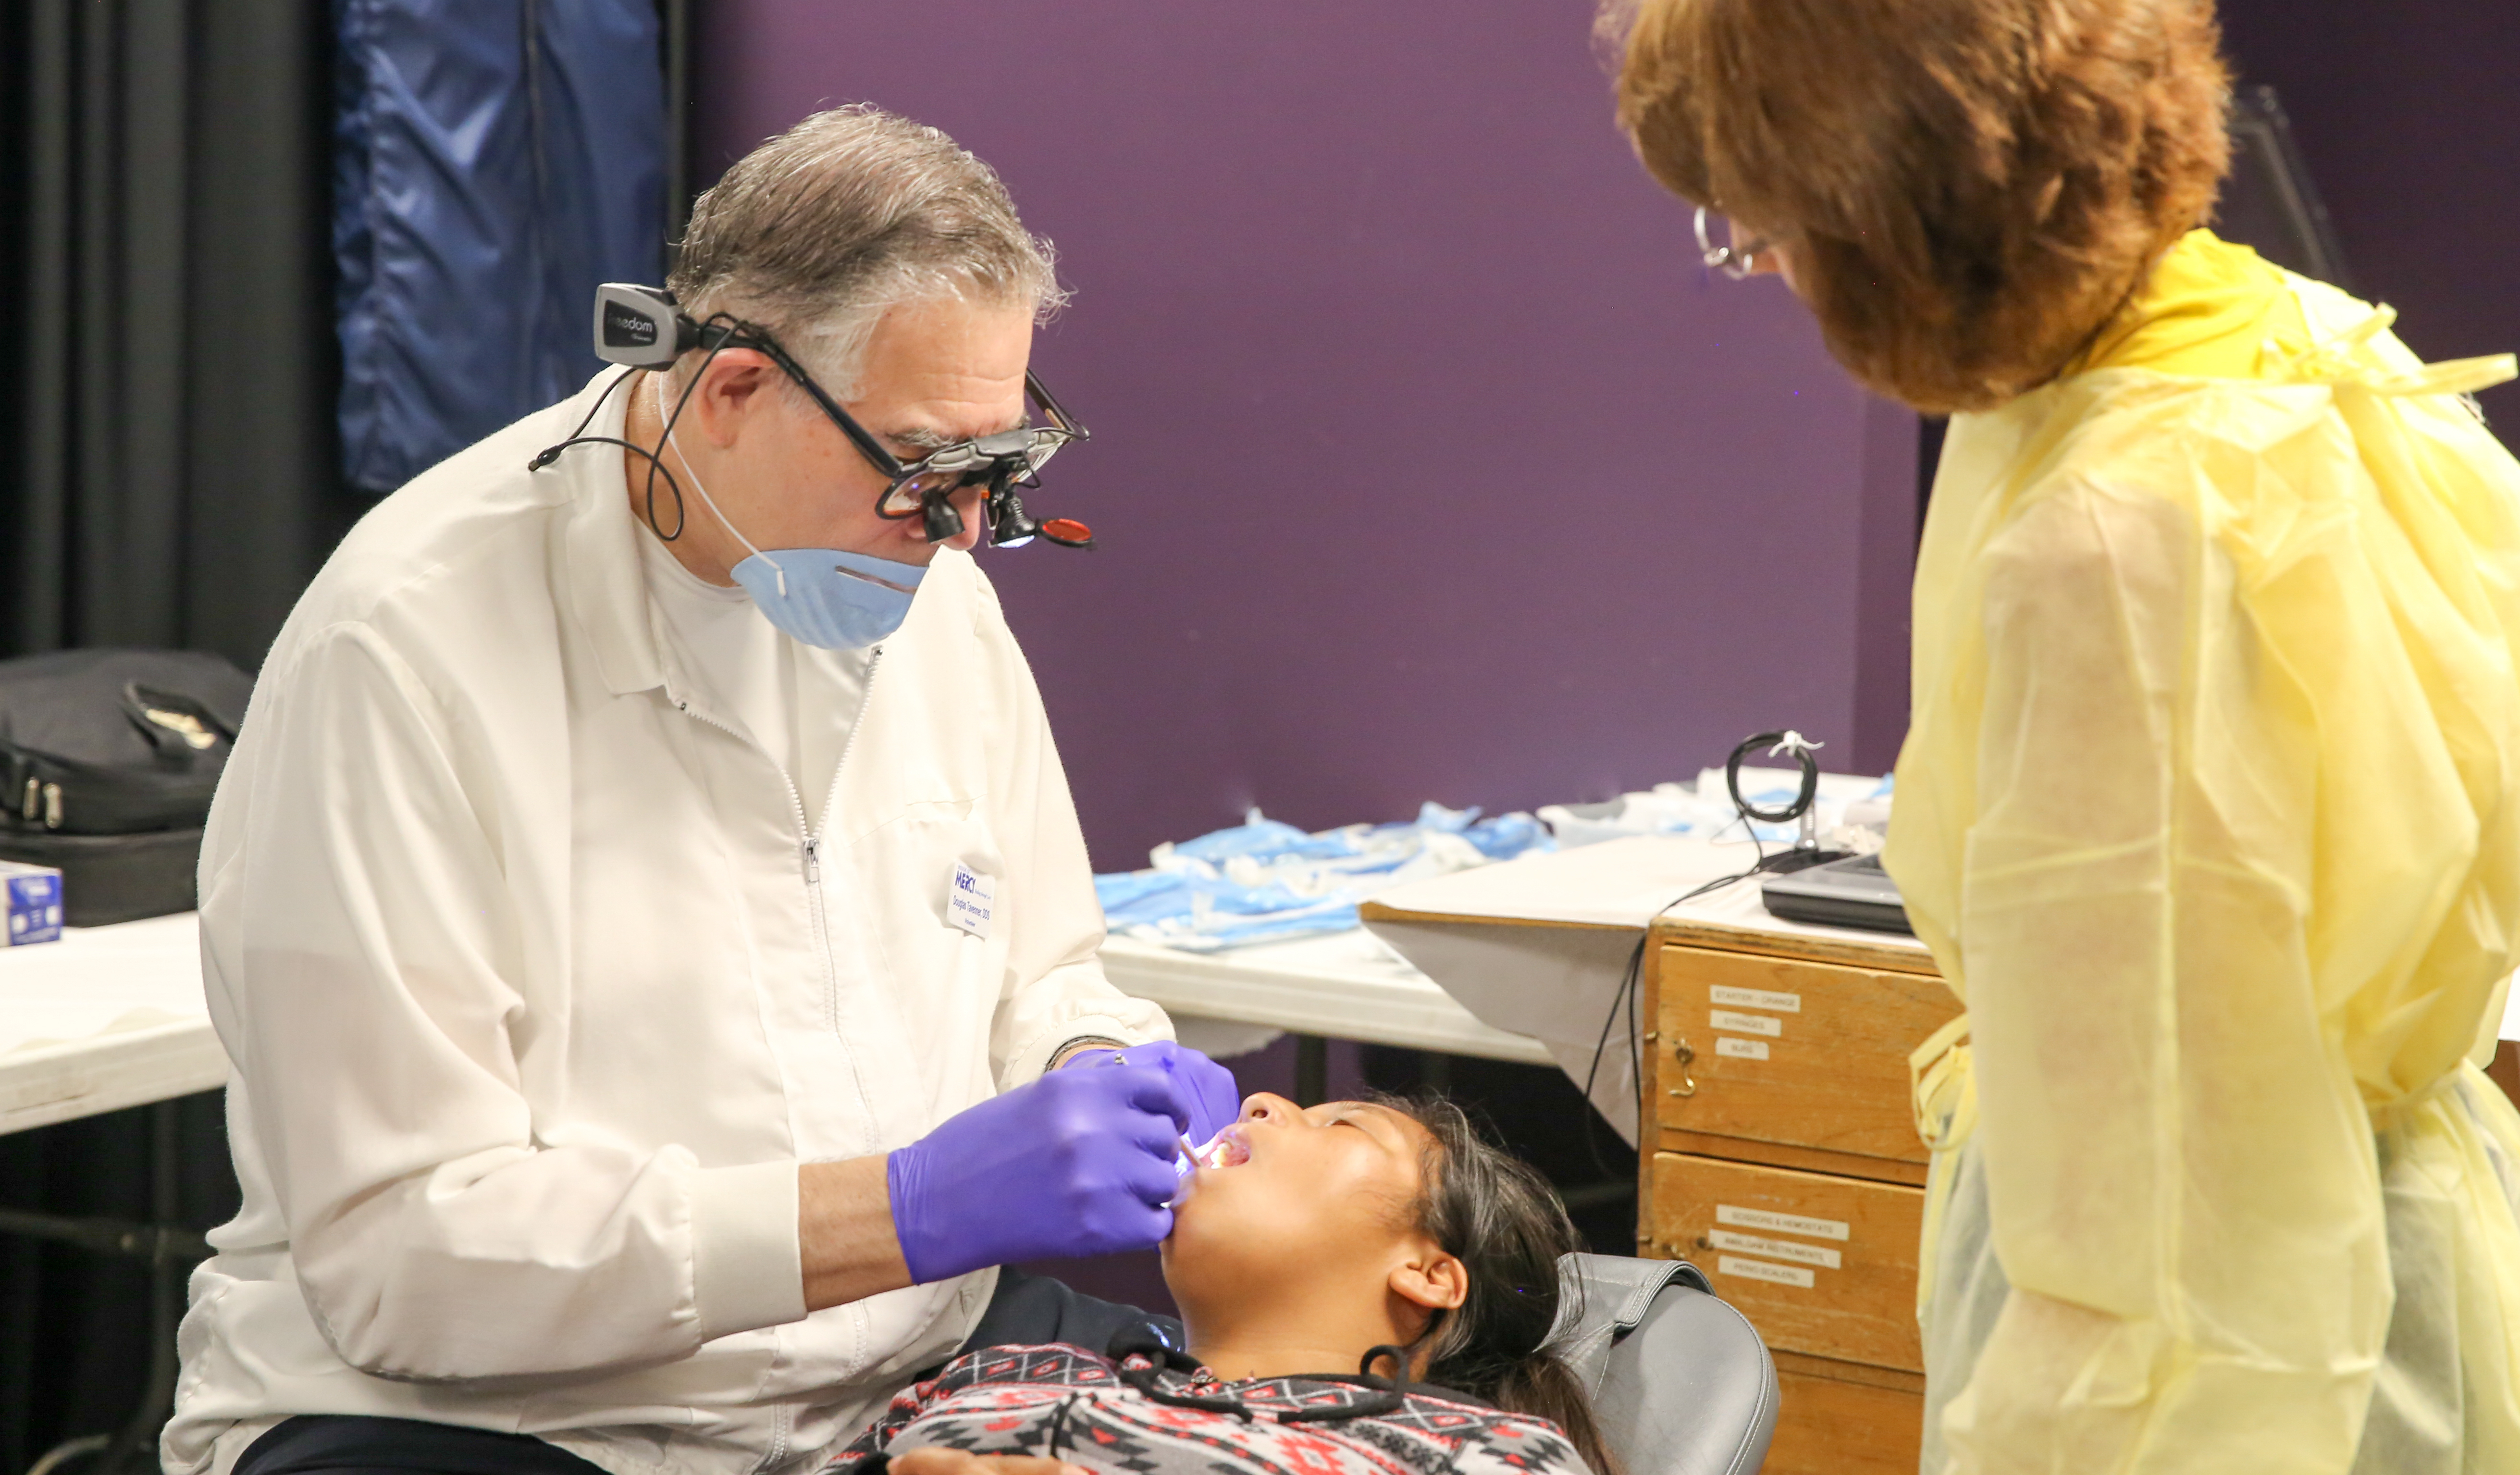 an older dentist examines a patients teeth while a woman looks on